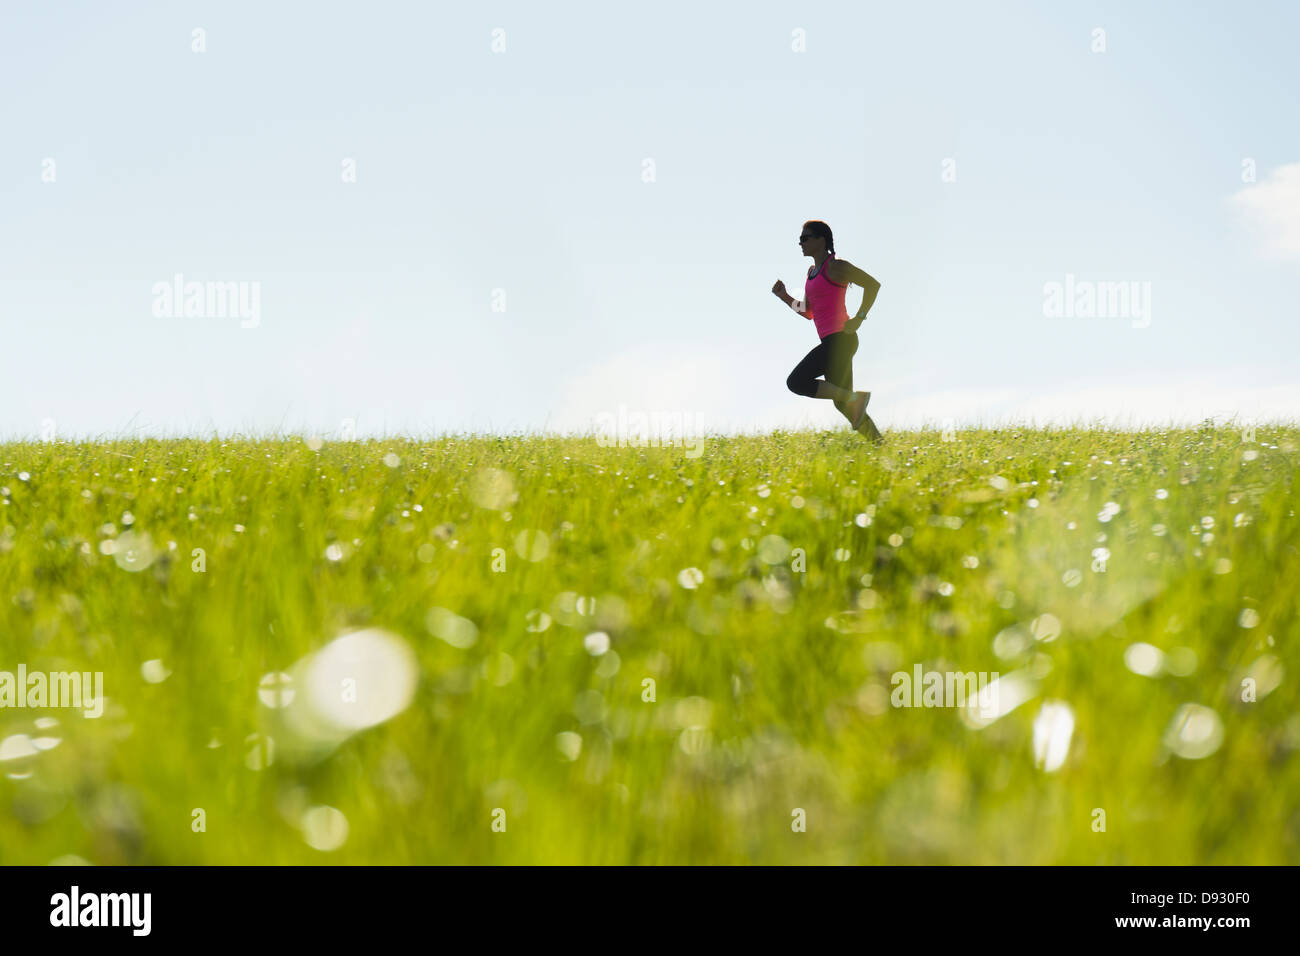 Woman jogging in meadow Photo Stock